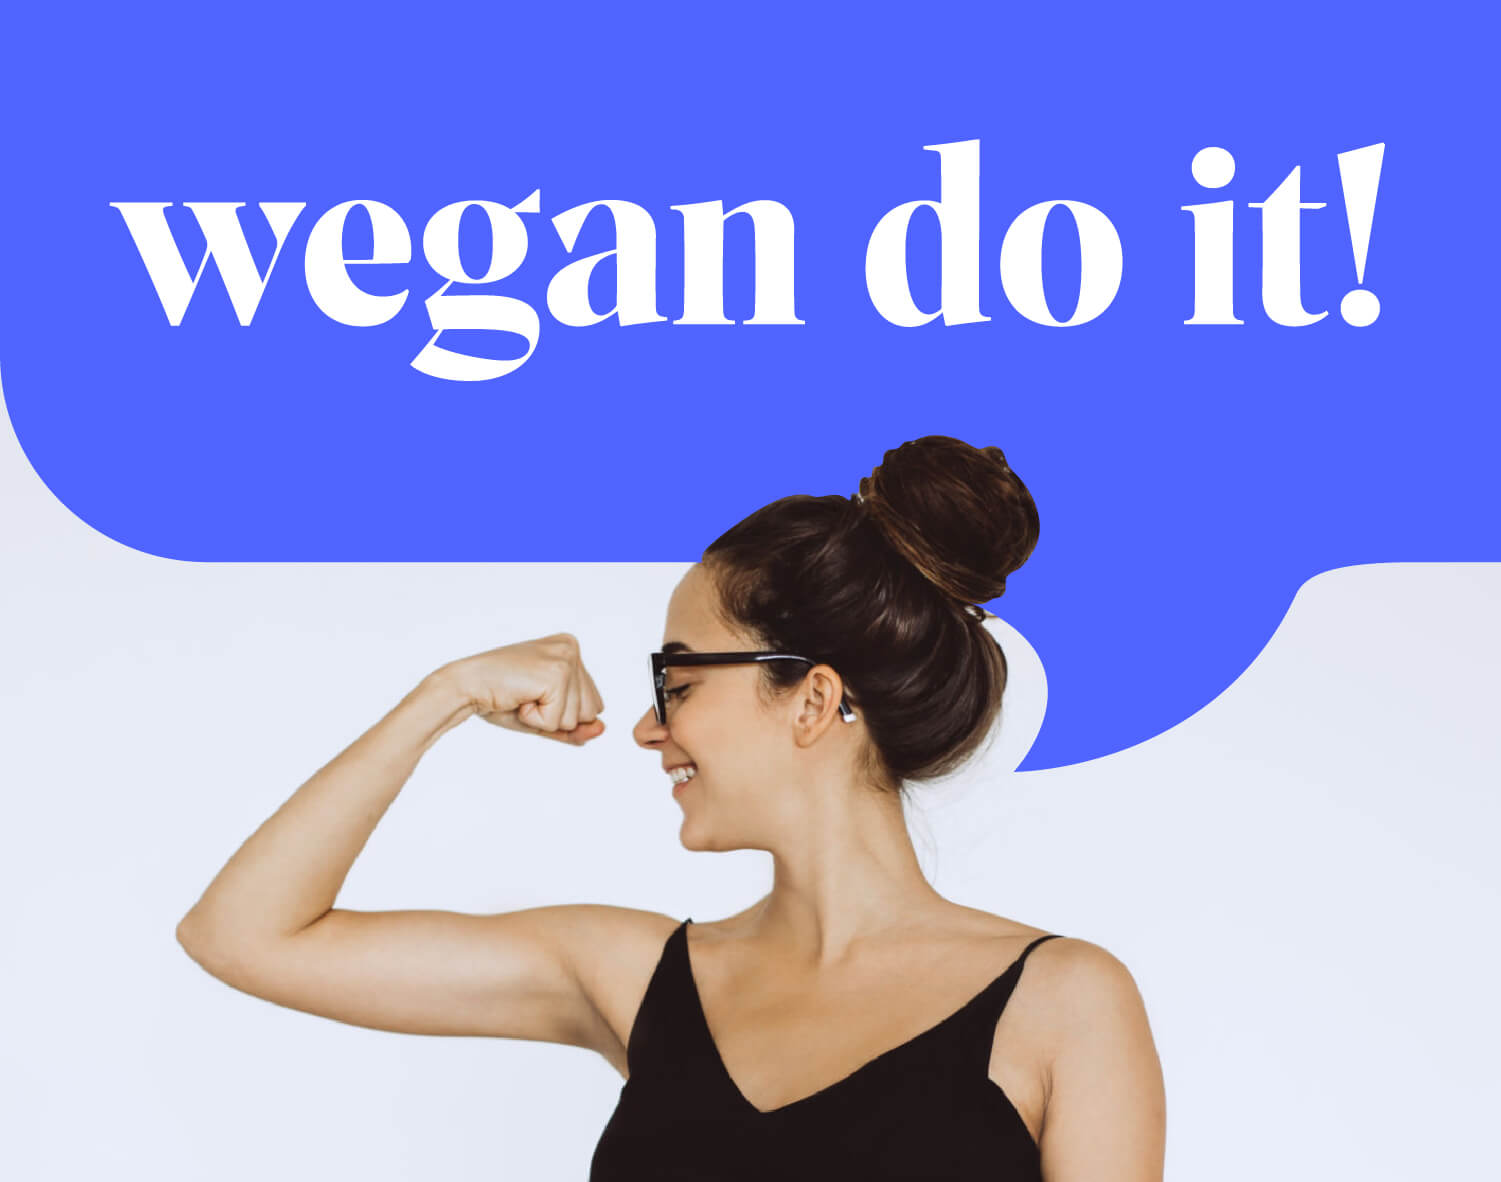 The image says 'Wegan do it' and has a girl looking at her arm